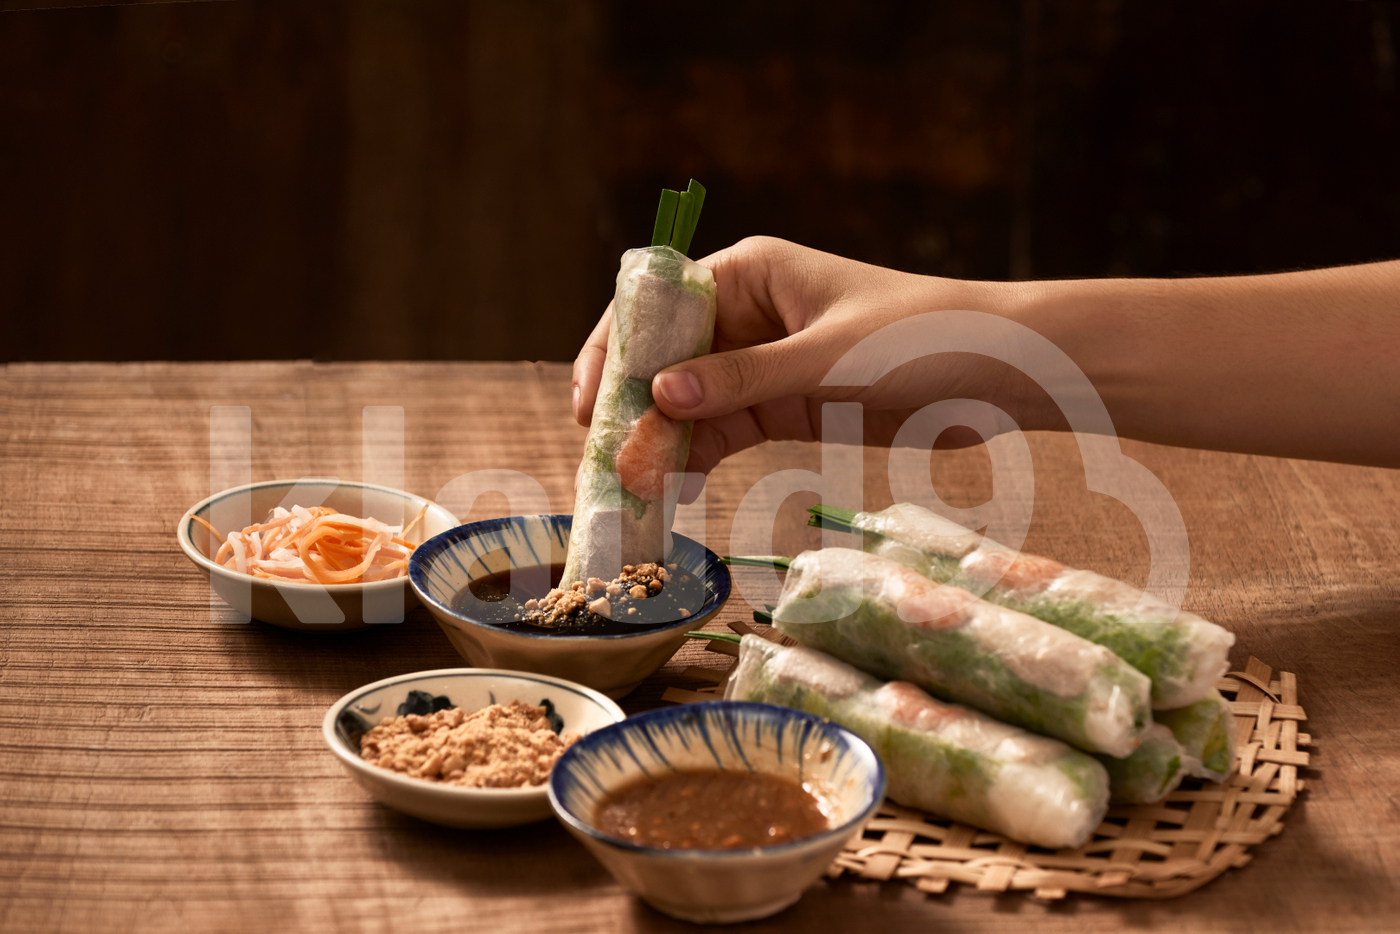 Young woman's hands eating healthy spring roll dipped in a soya sauce. Selective focus.